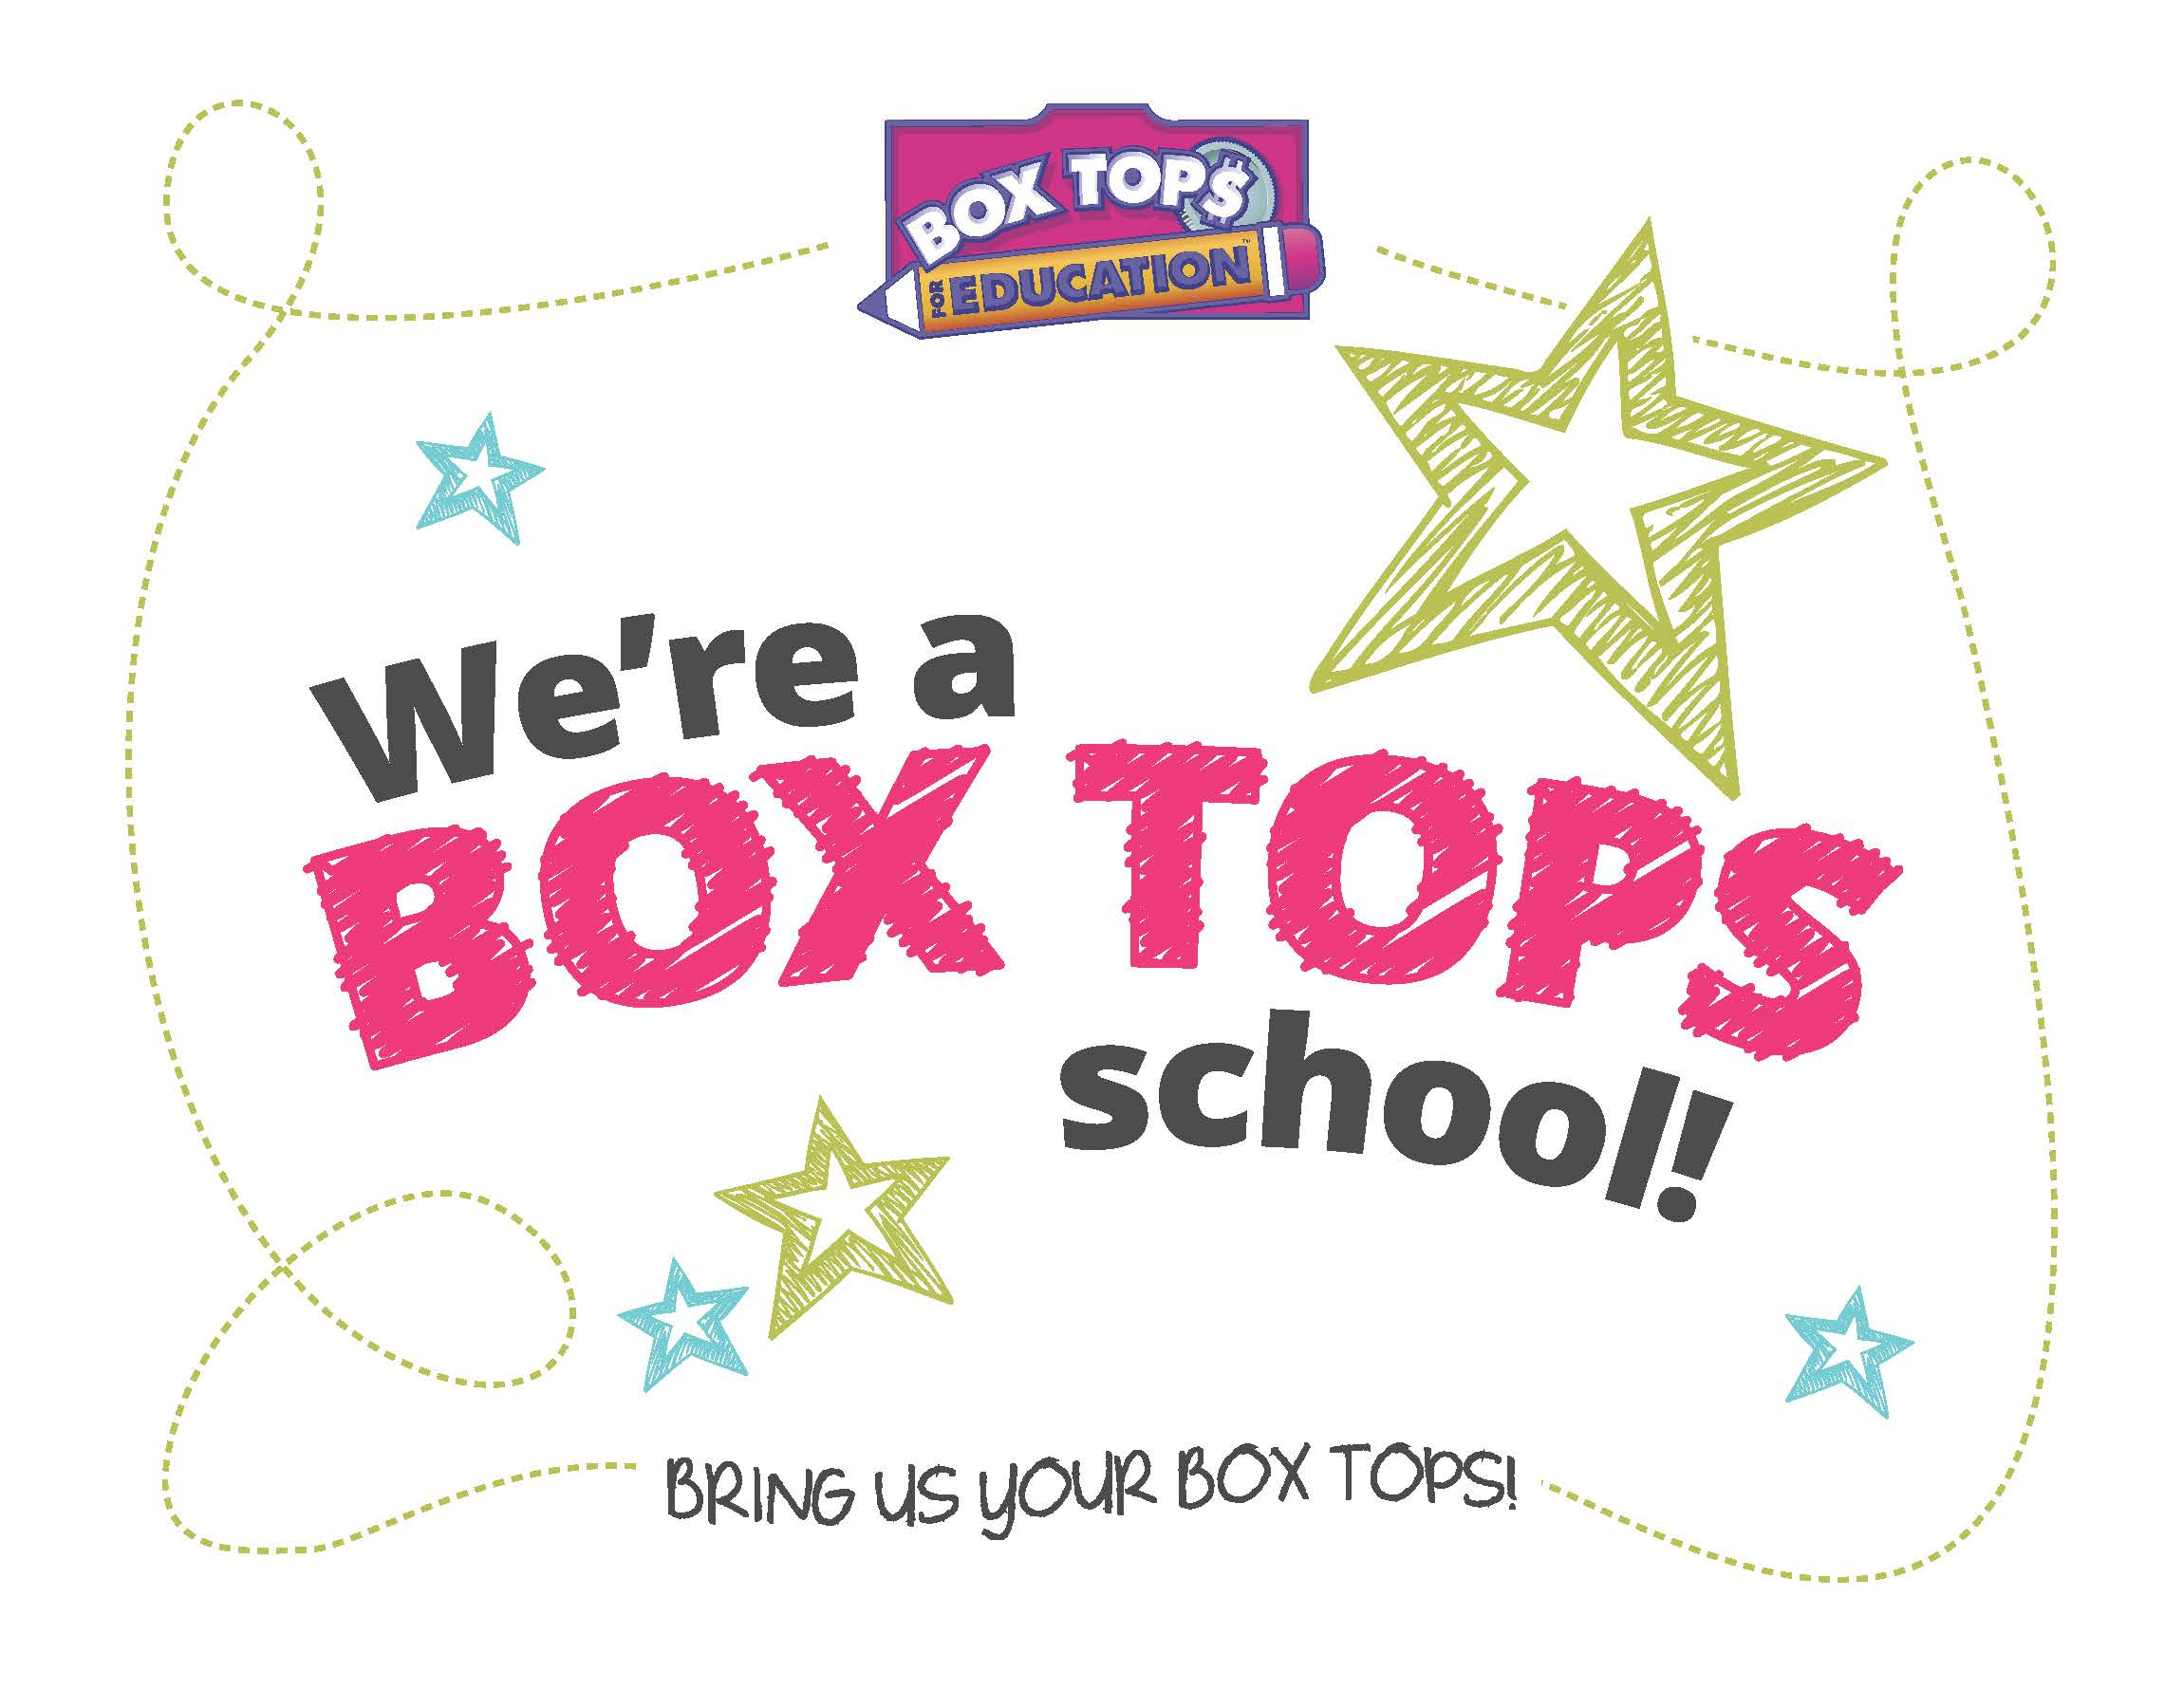 Box Tops For Education Clip Art Free | Lnkk - Free Printable Box Tops For Education